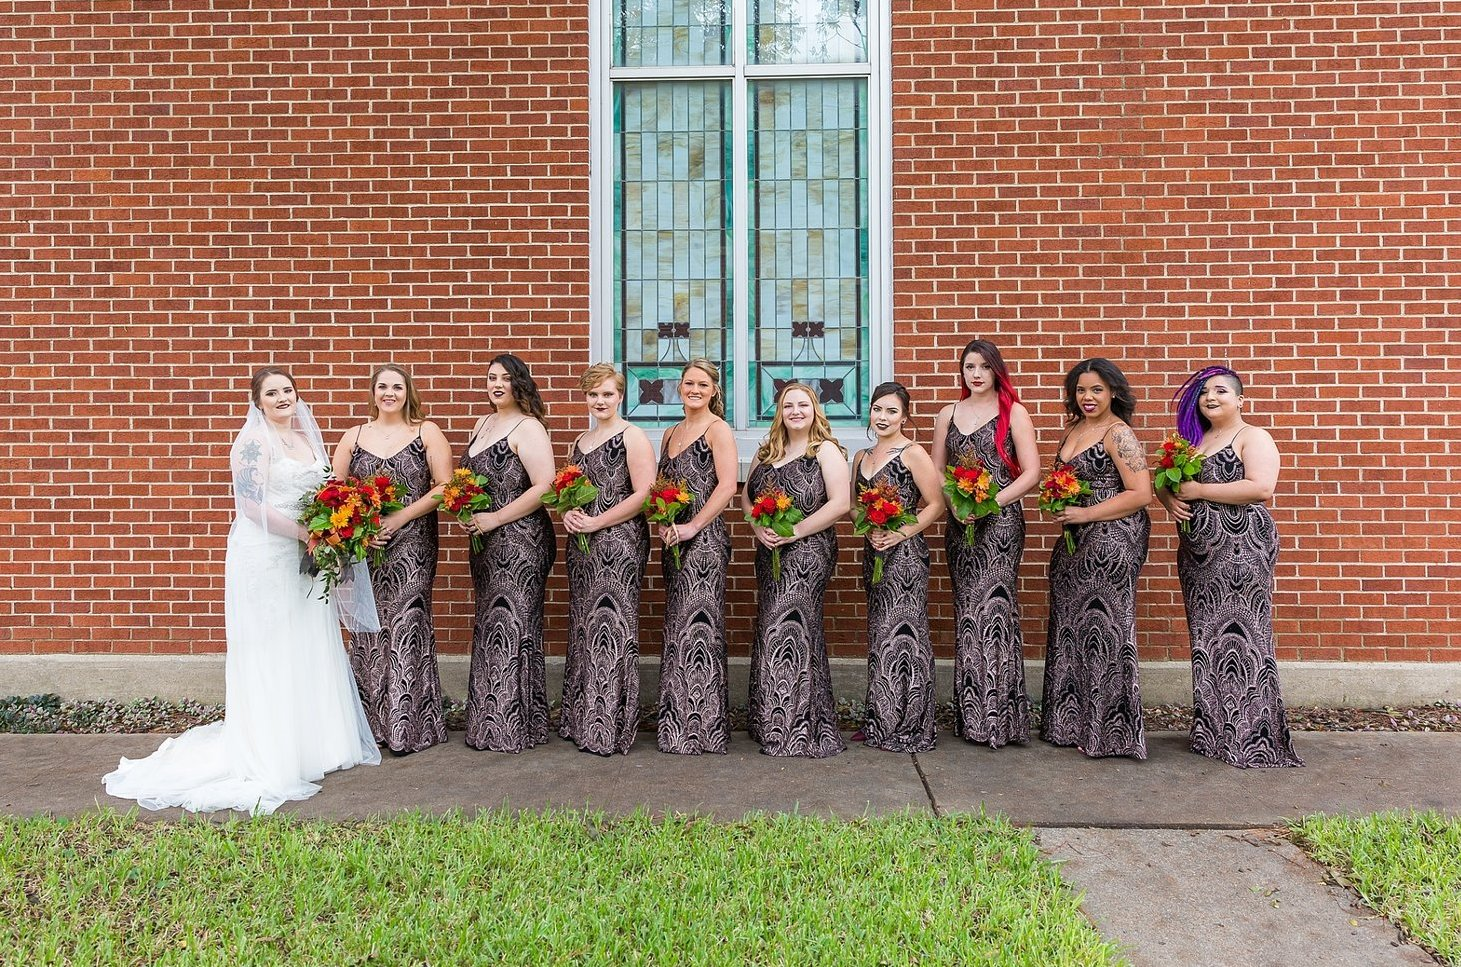 Fall-Gothic-Wedding-Waco-DFW_0005b.jpg